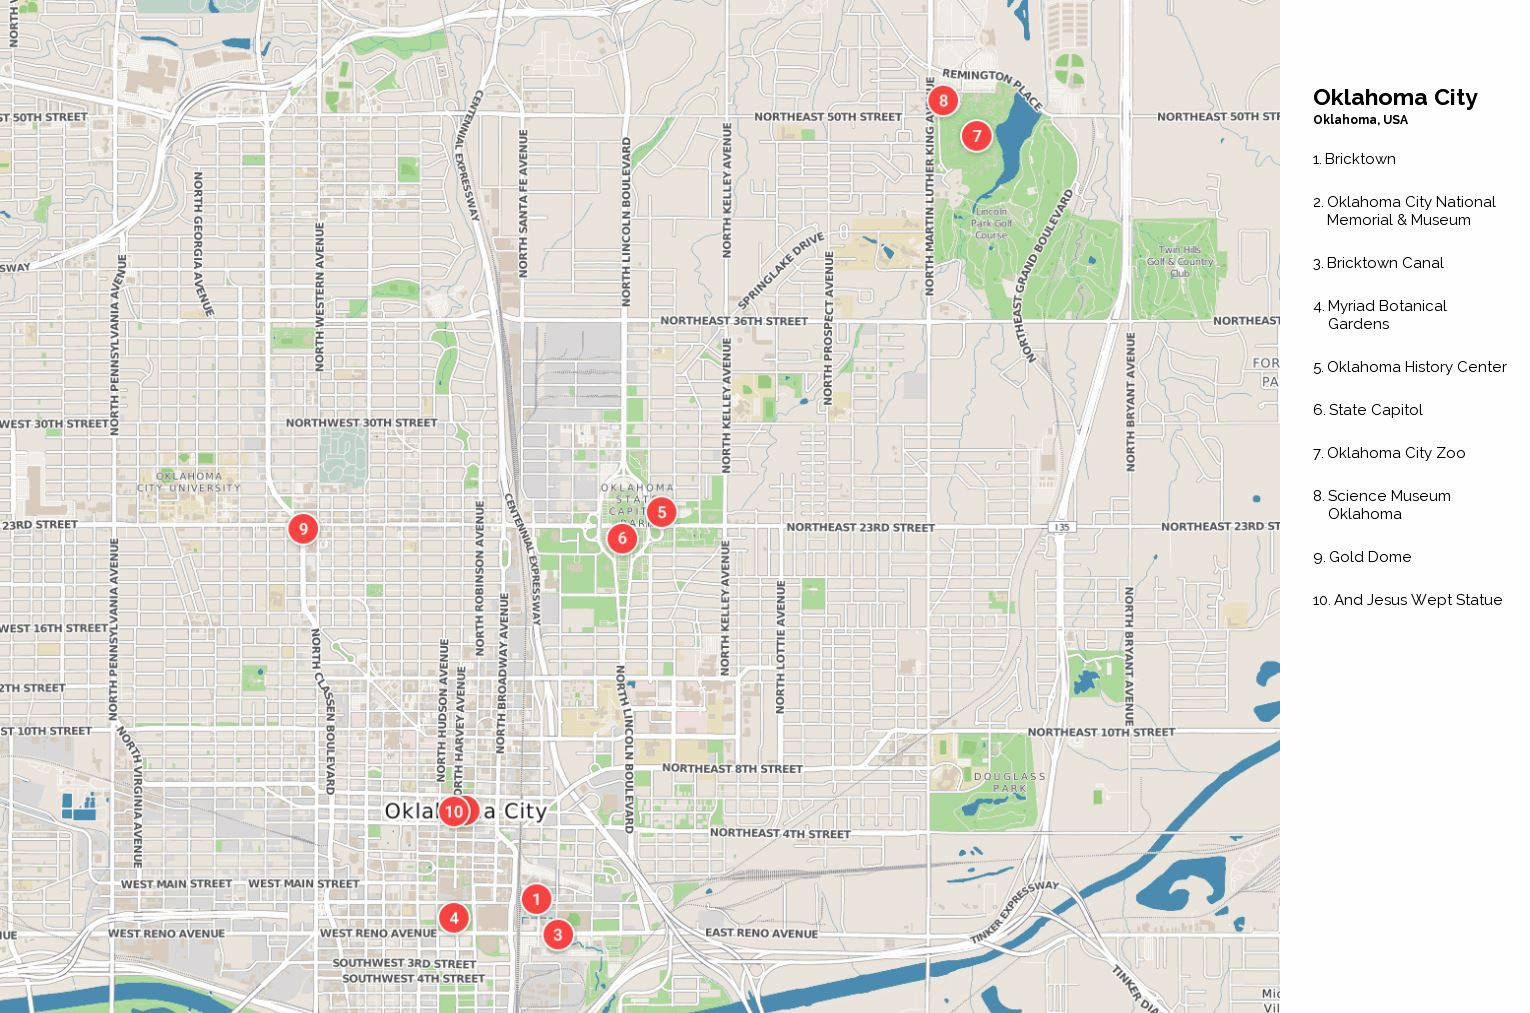 Large Oklahoma City Maps For Free Download And Print High - Oklahoma city map